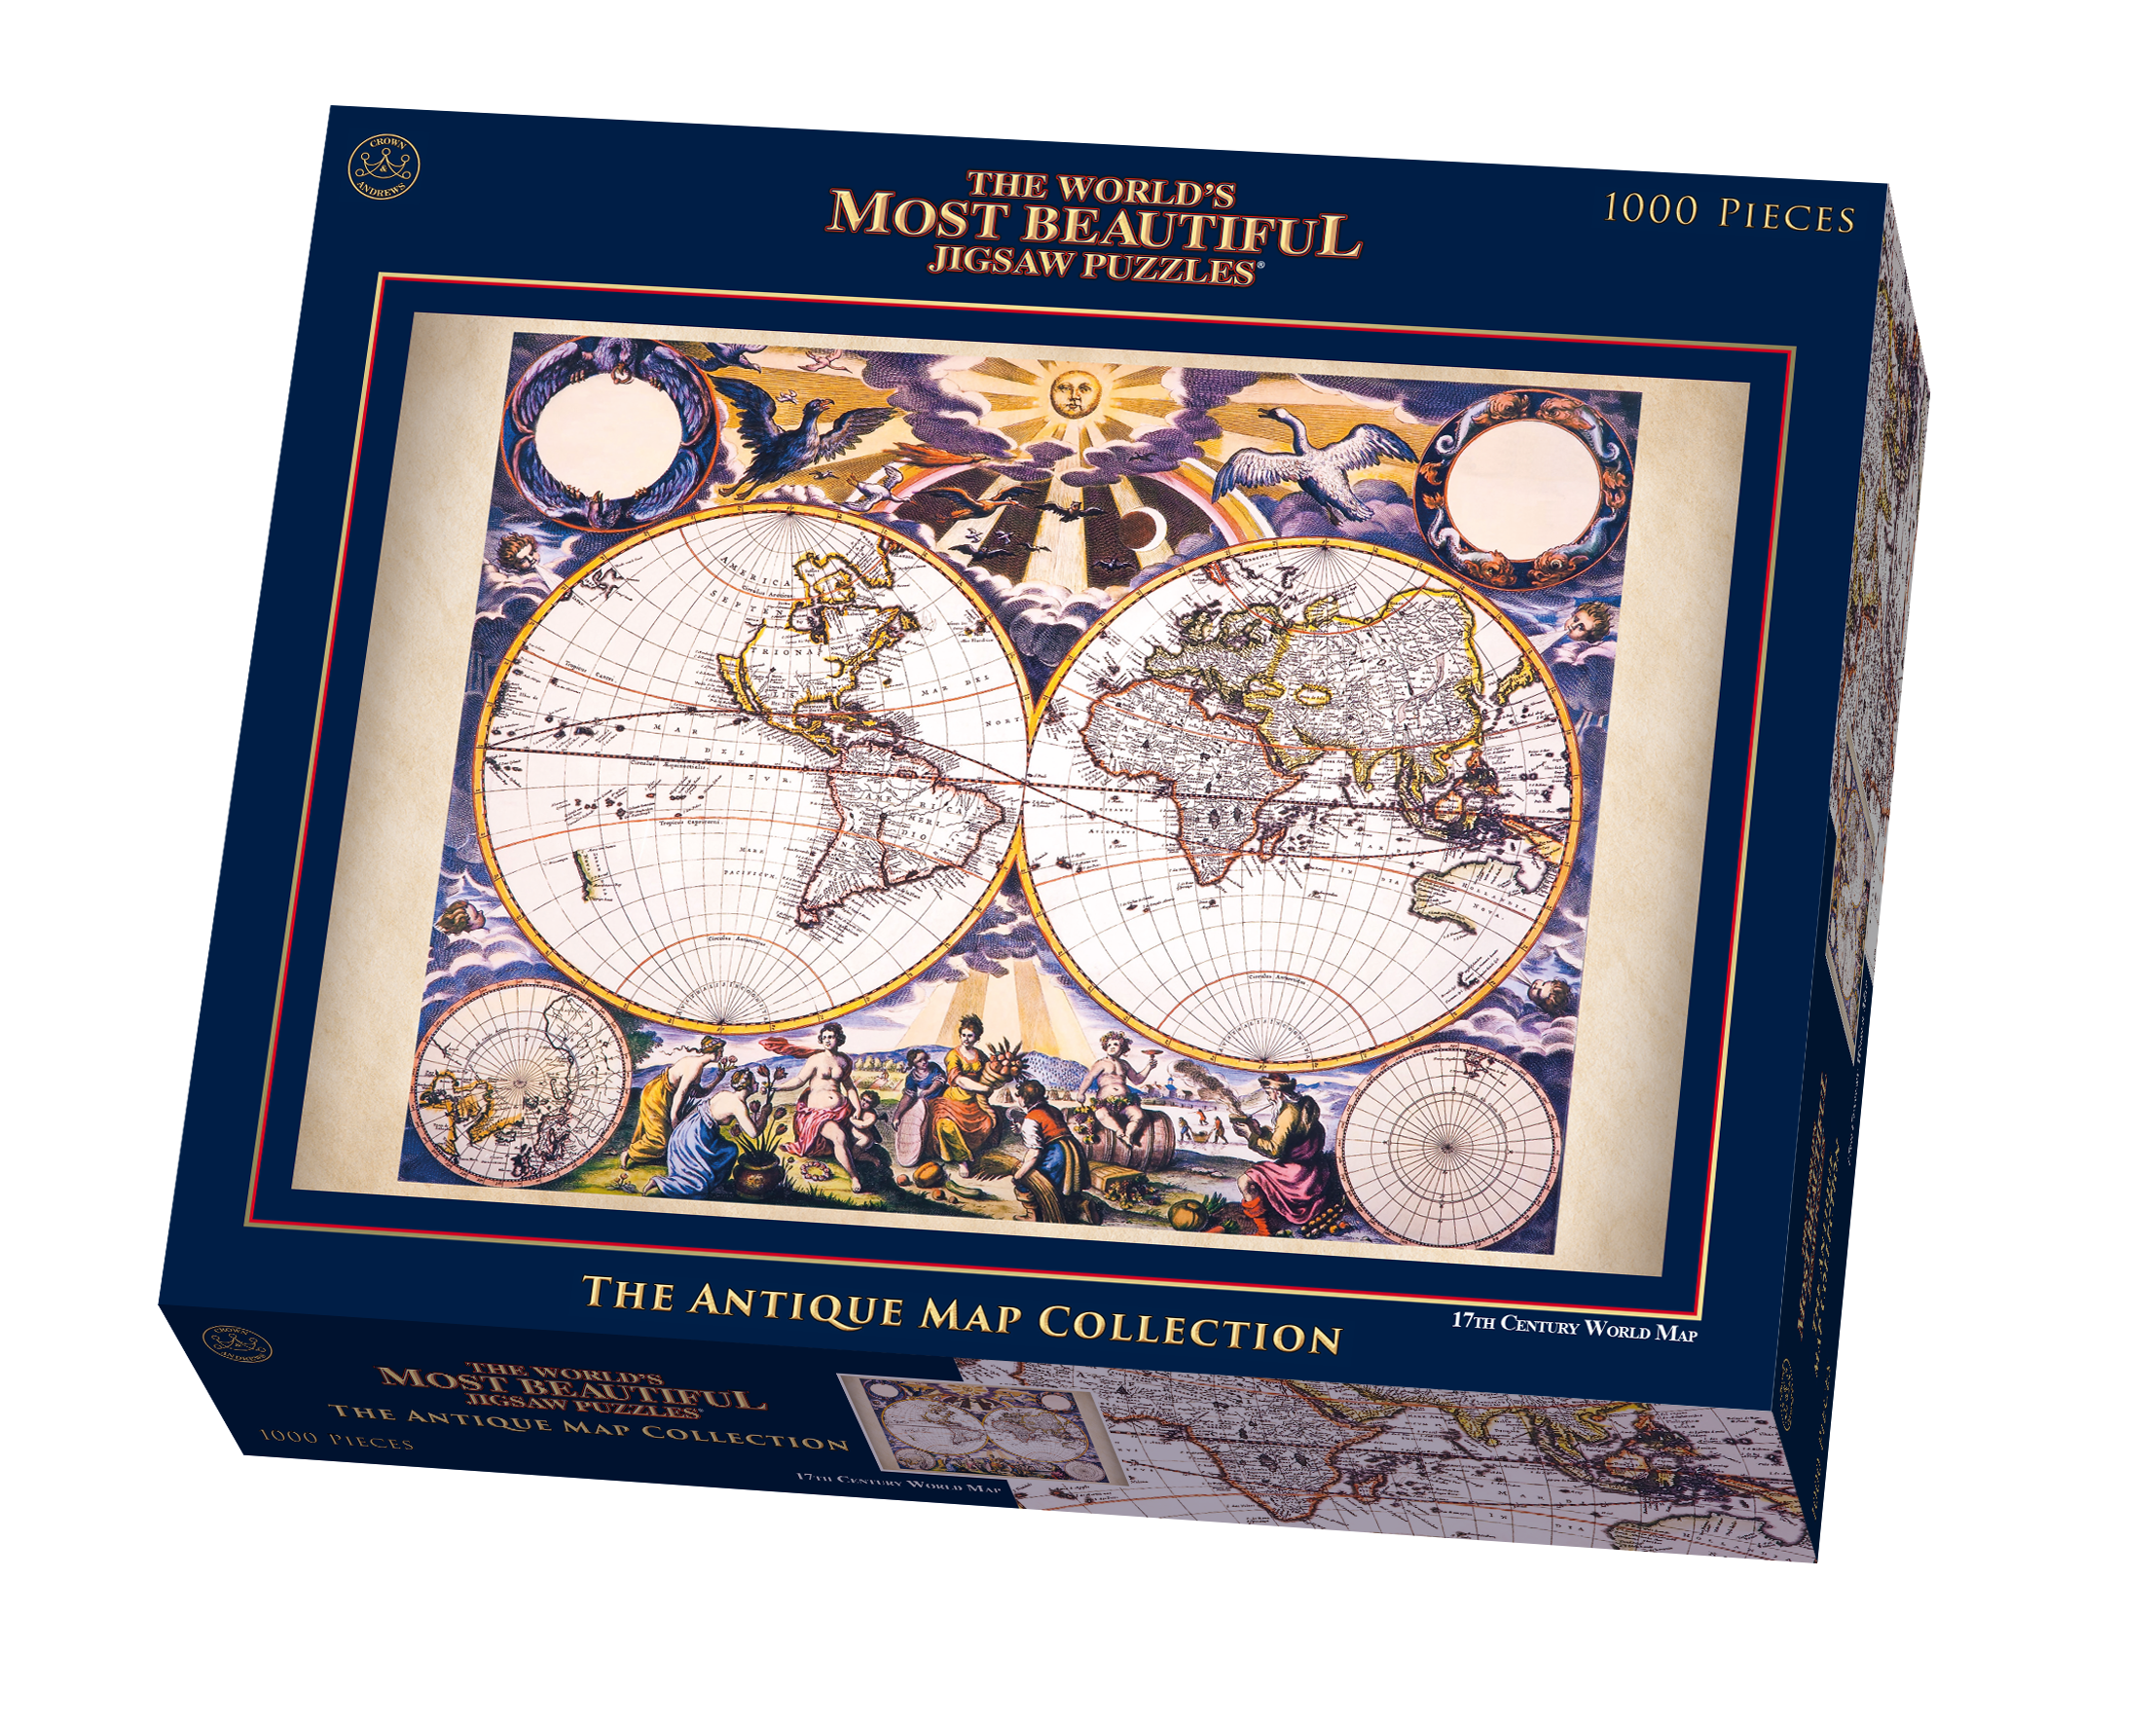 The worlds most beautiful 17th century double hemisphere world map the worlds most beautiful 17th century double hemisphere world map by pieter goos jigsaw puzzle goliath games goliath games gumiabroncs Choice Image